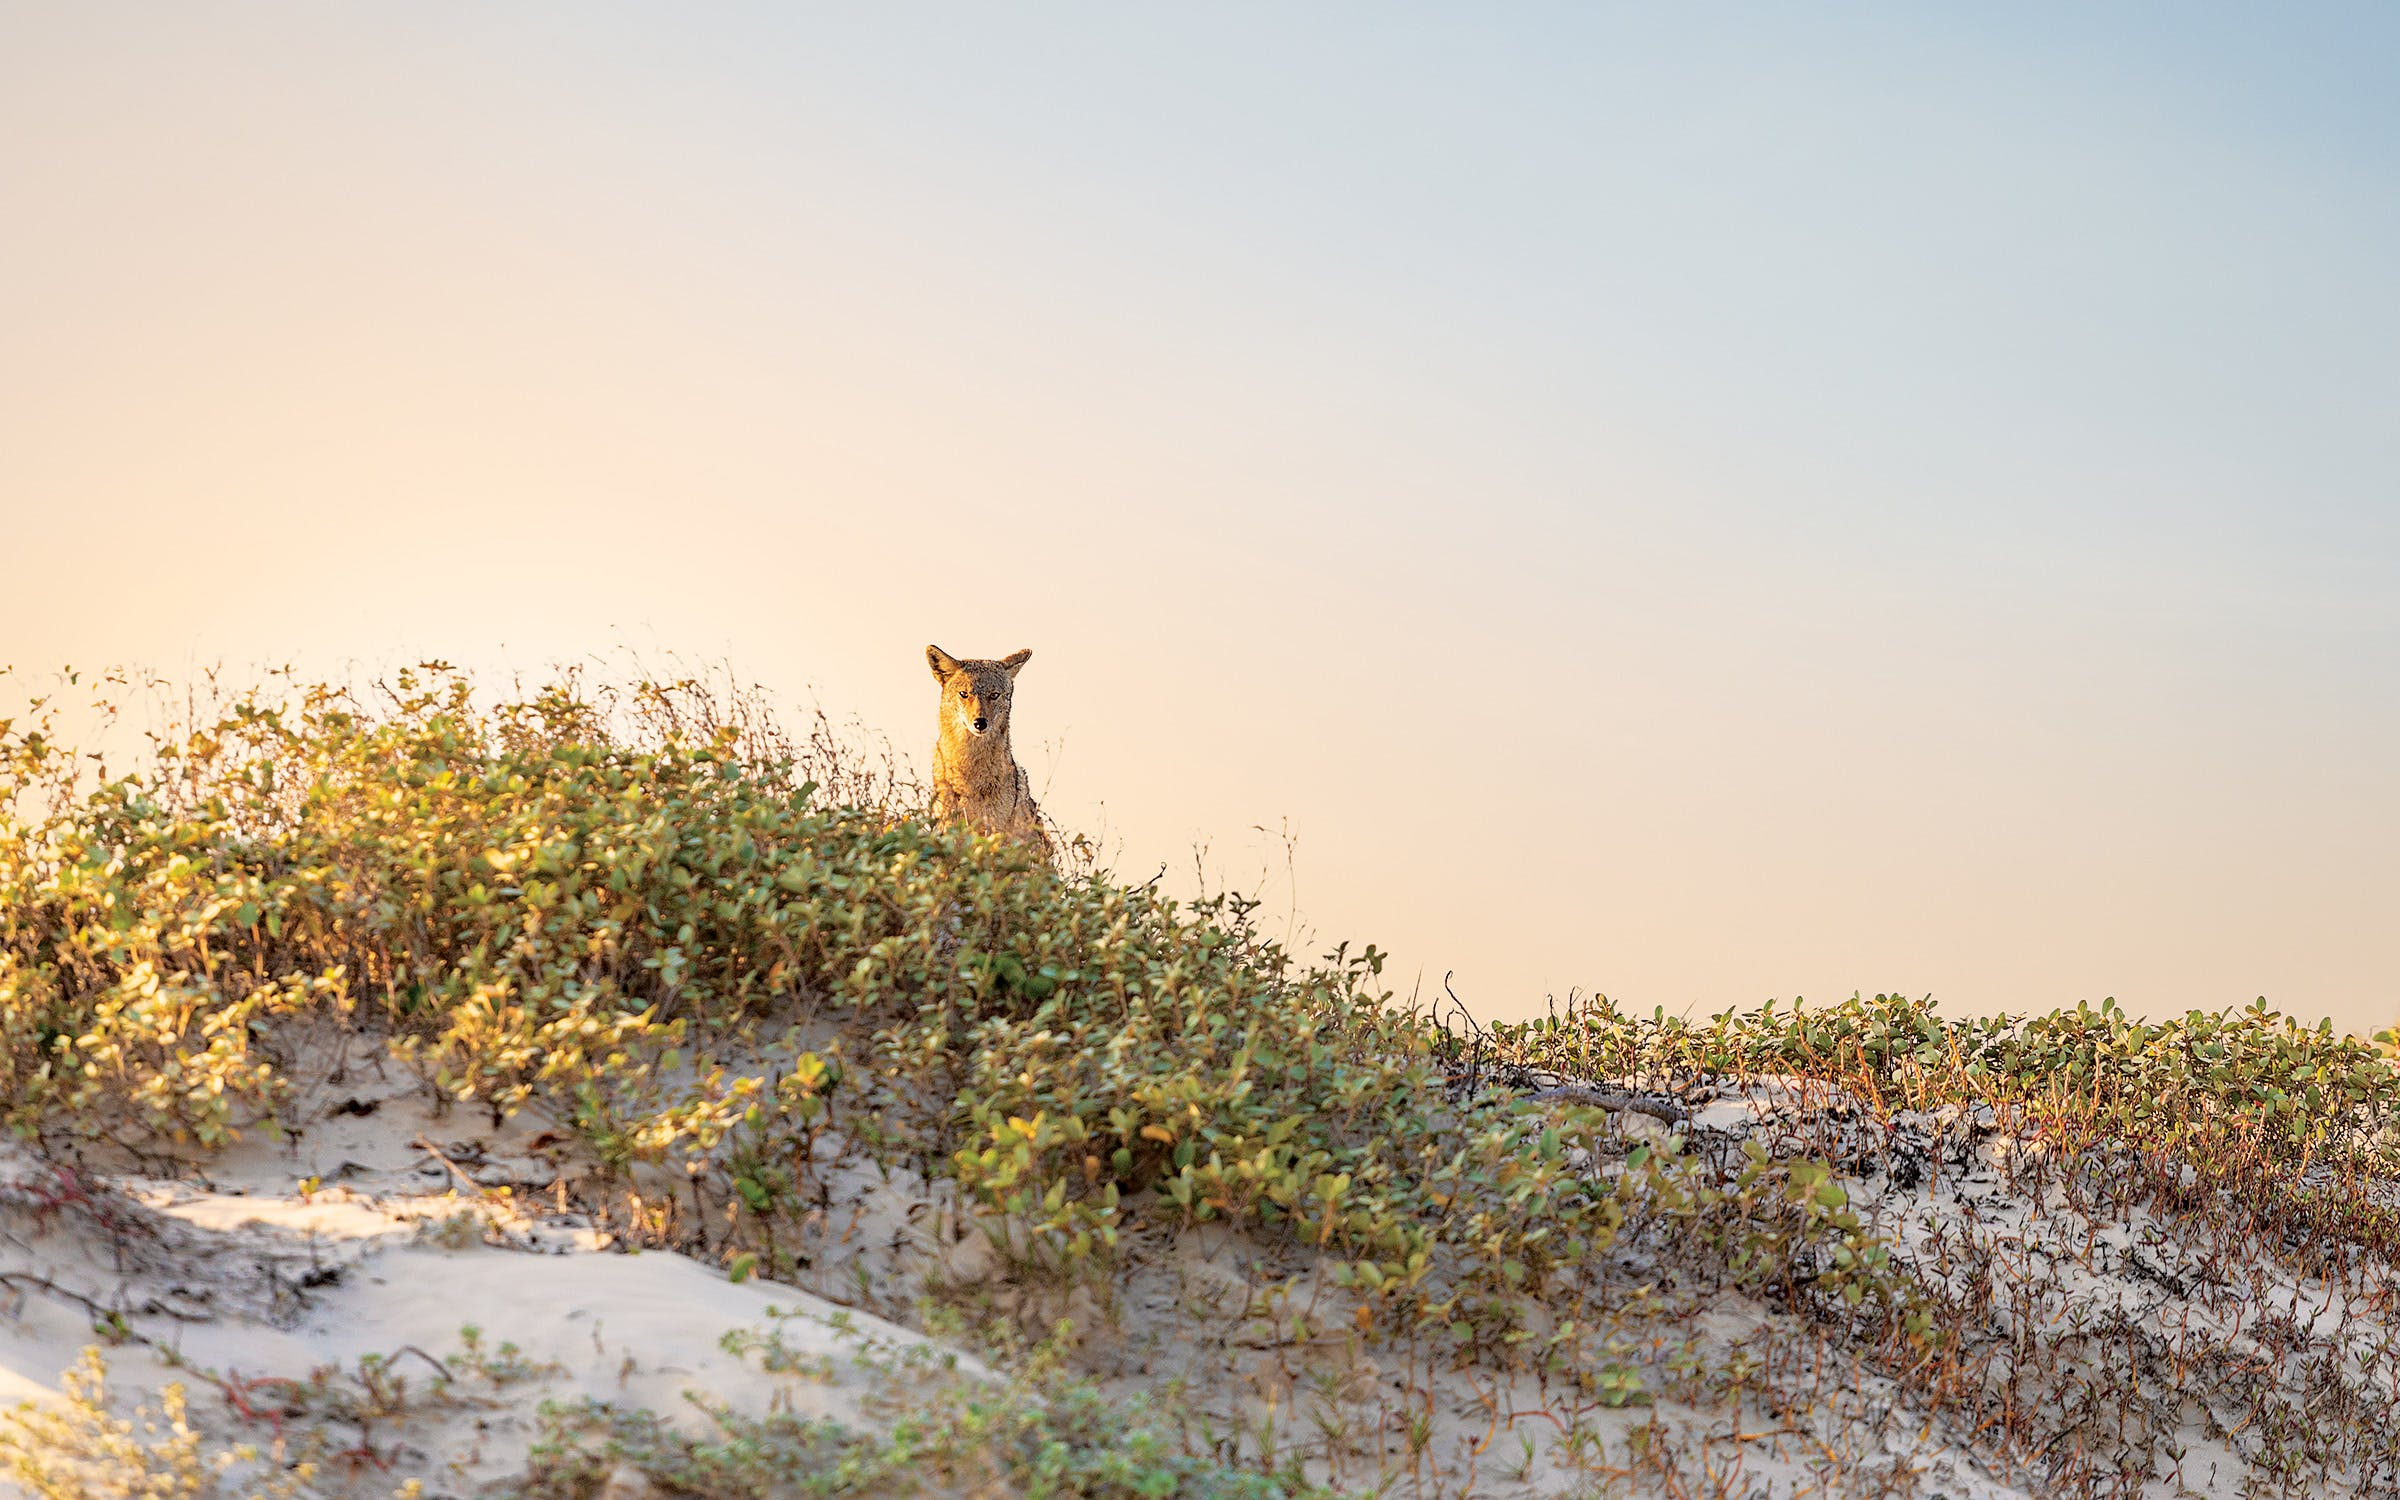 A coyote approaches the campsite around mile marker 15.